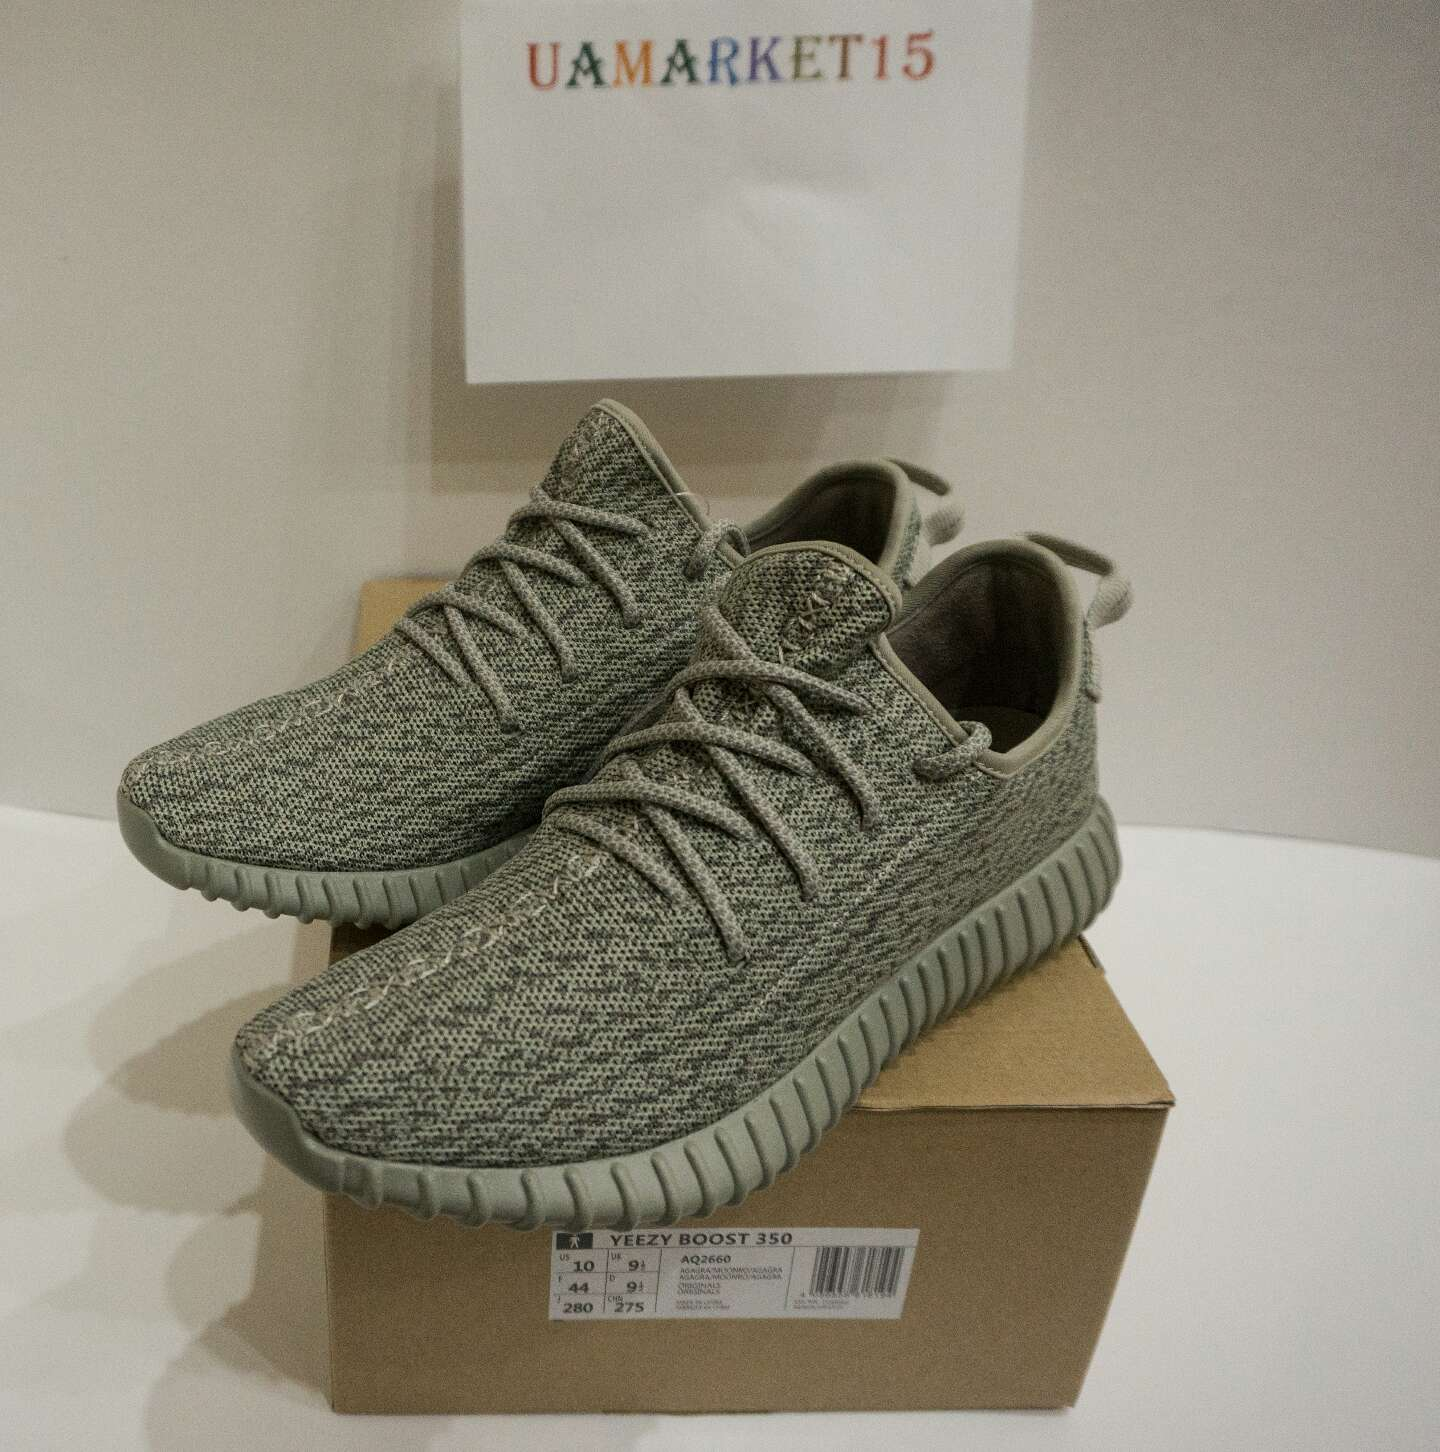 Unauthorized Authentic Yeezy 350 Boost Turtle Dove Review